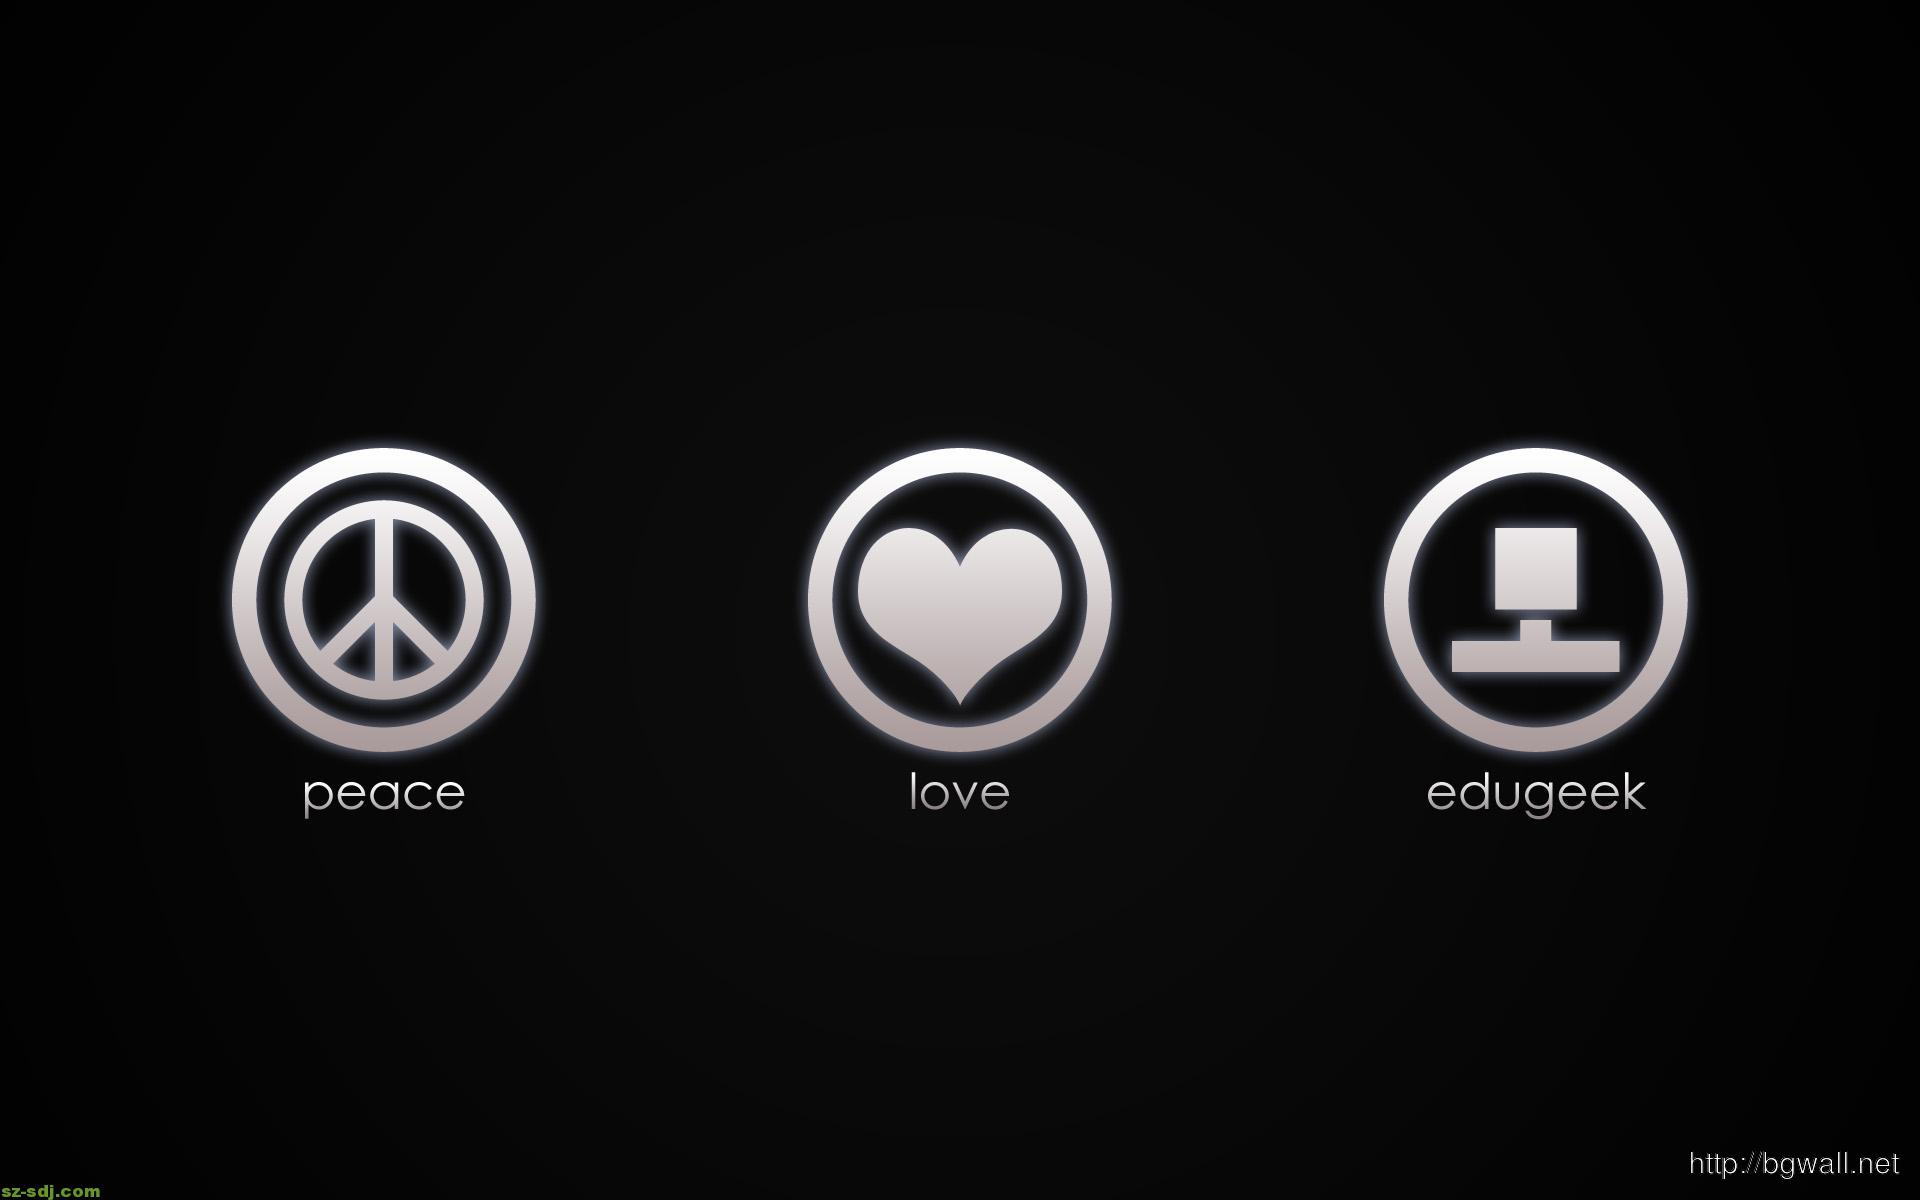 Background Images Wallpaper Black Peace Wallpaper Widescreen Download 1920x1200